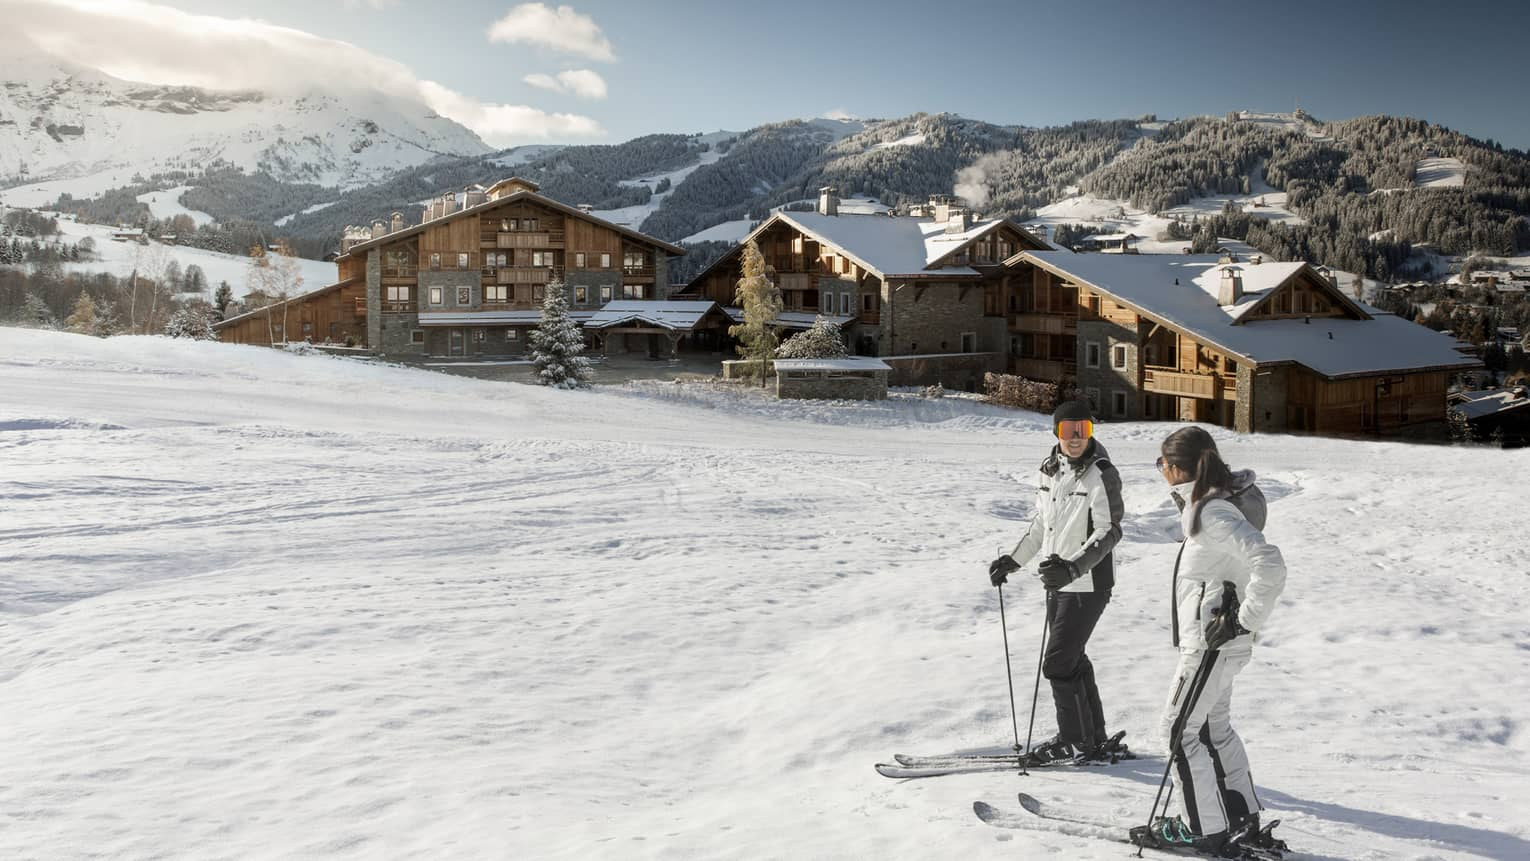 Man, woman on skis at top of snowy hill, Four Seasons Hotel Megeve in background